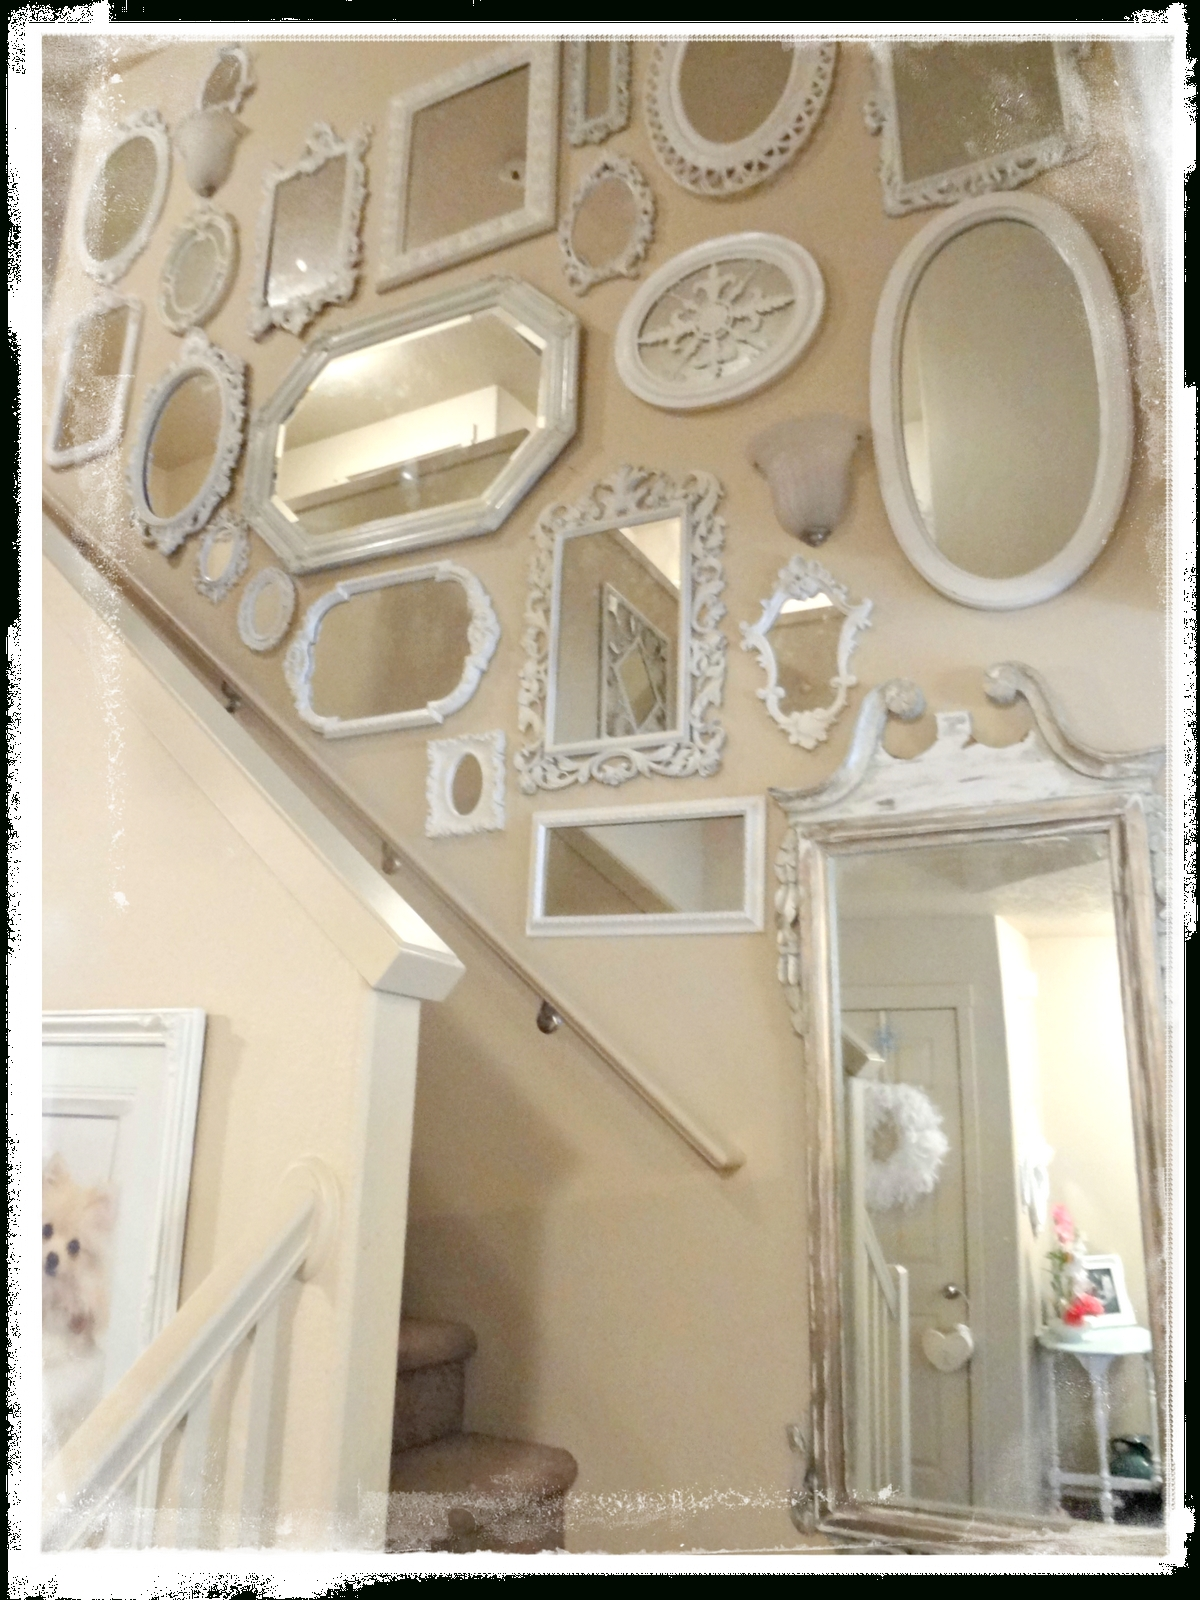 Shabby Chic Mirror ~ Holst Pertaining To Chic Mirrors (View 4 of 20)